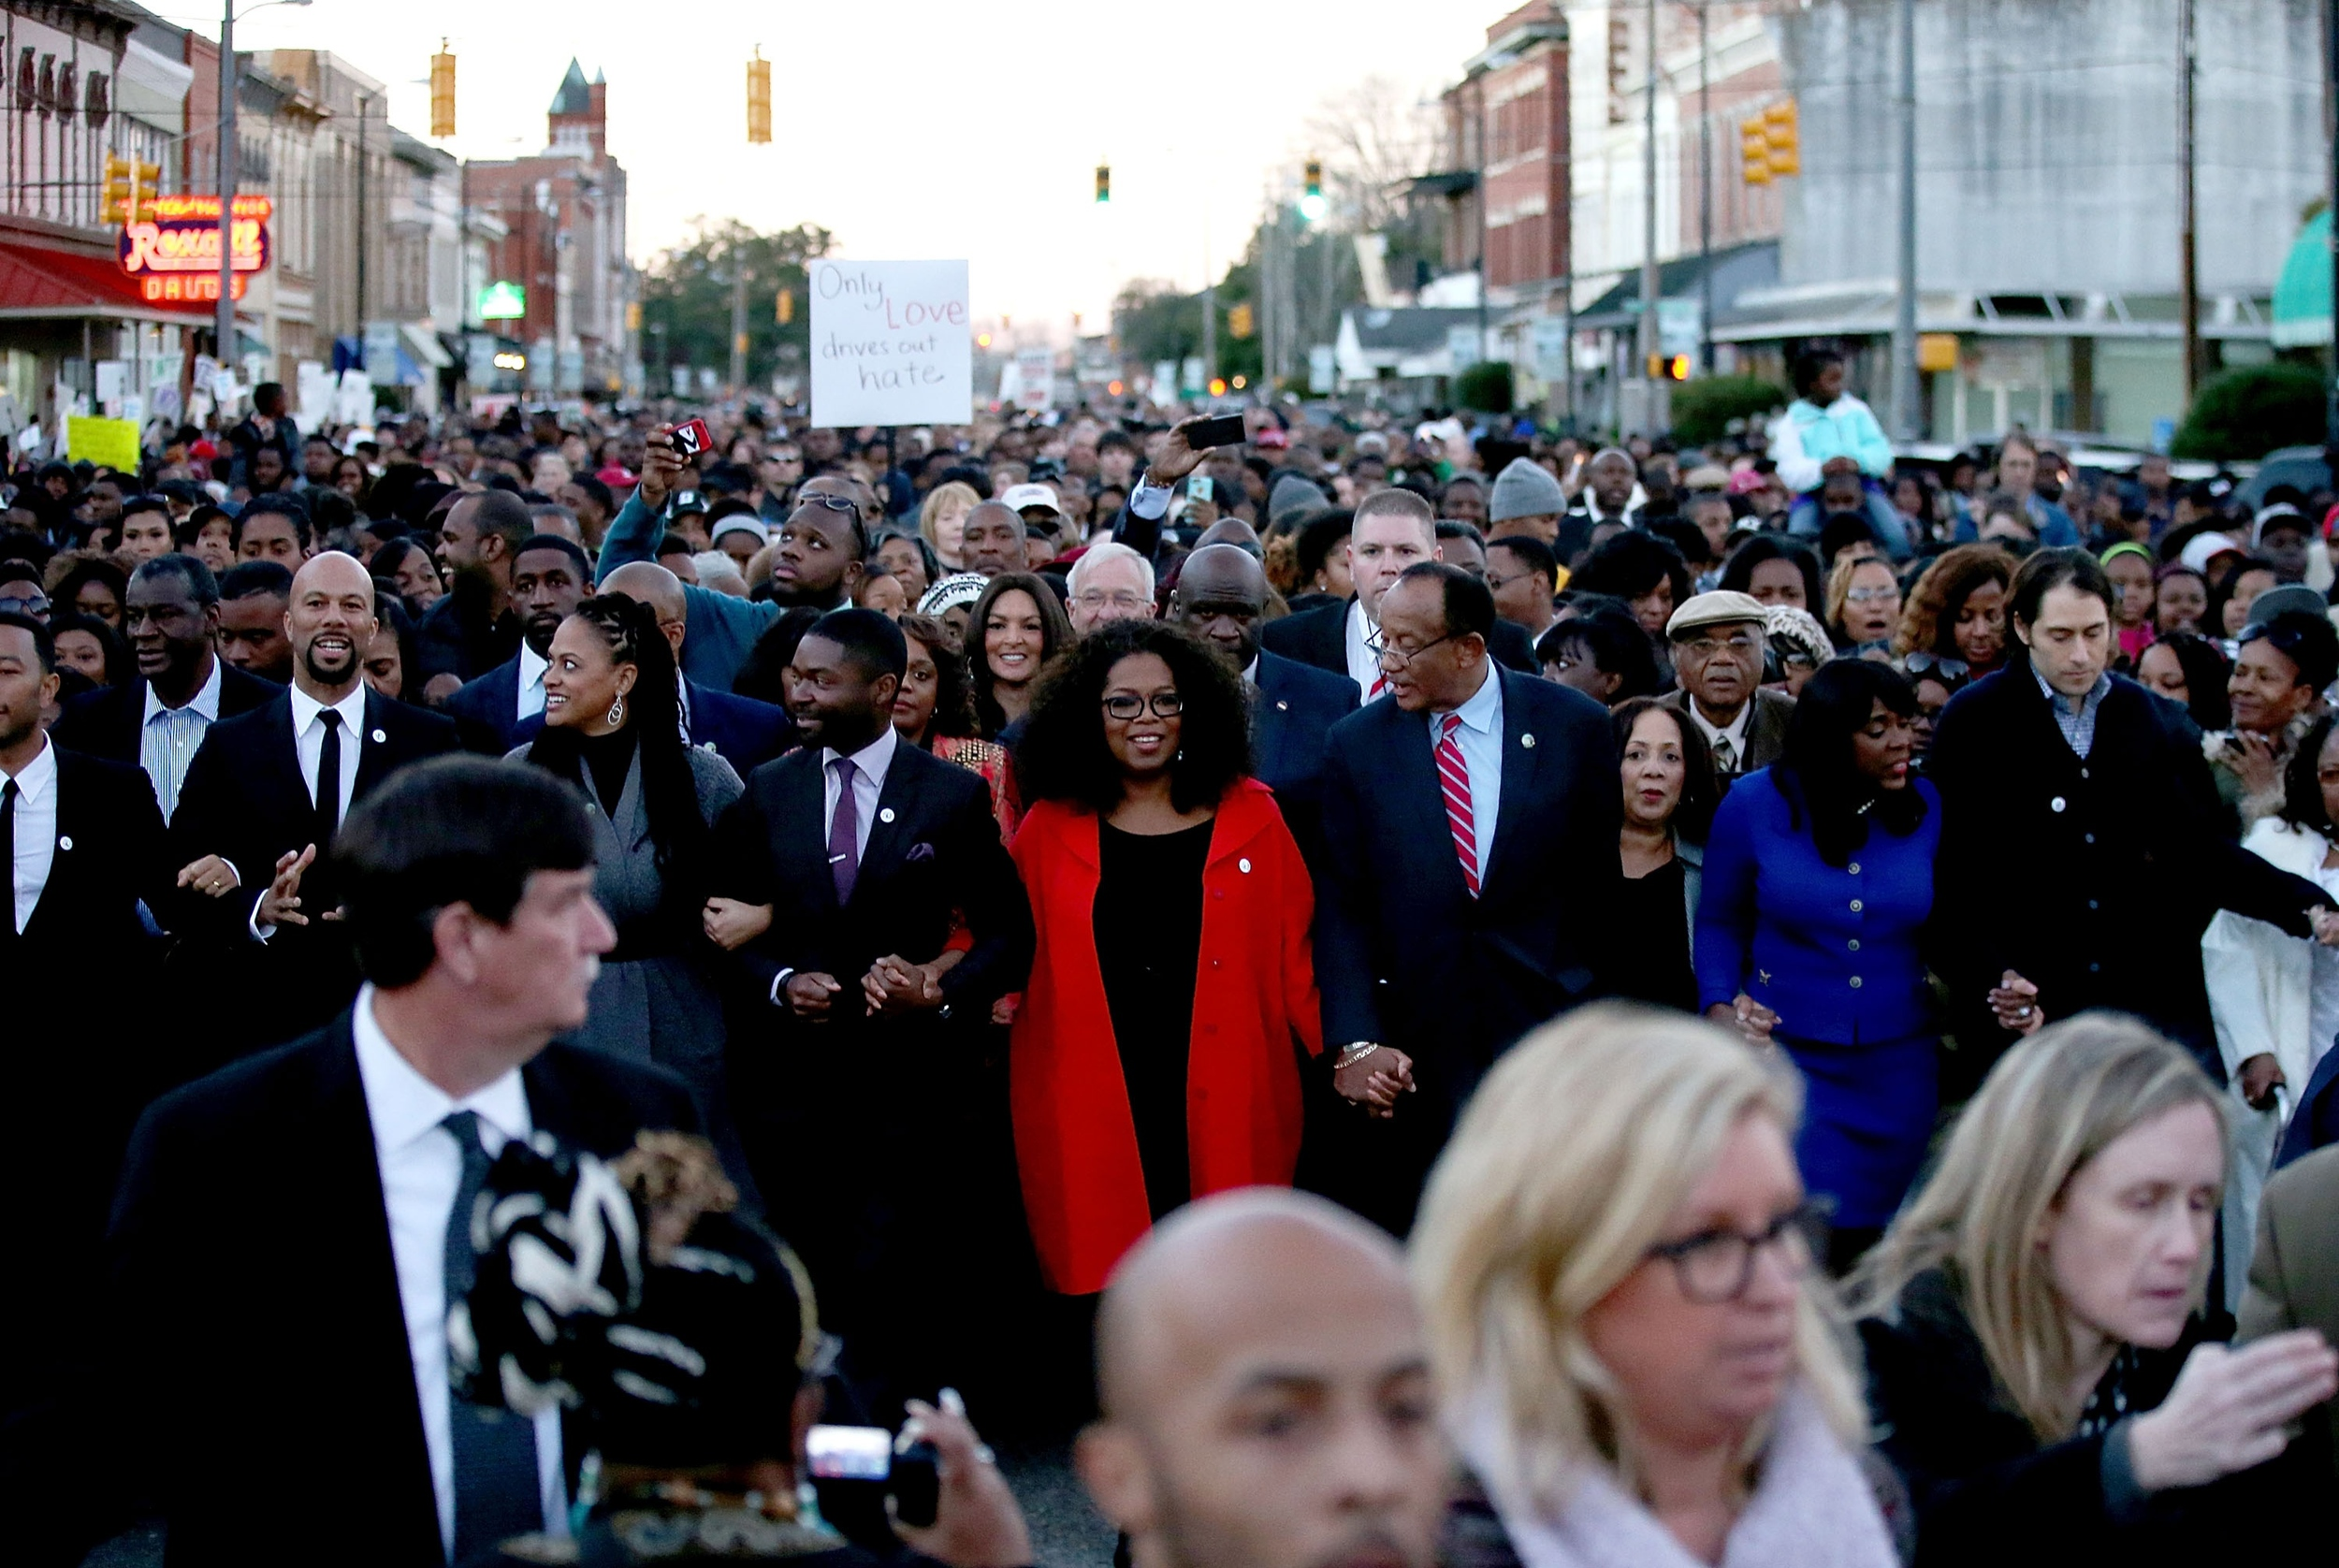 Oprah Winfrey and the cast of  Selma walk down Broad Streettowards the Edmund Pettus Bridge accompanied by thousands of participants in honor of Rev. Martin Luther King Jr. Day on January 18, 2015 in Selma, Alabama.(Photo by  Sean Gardner/Getty Images )